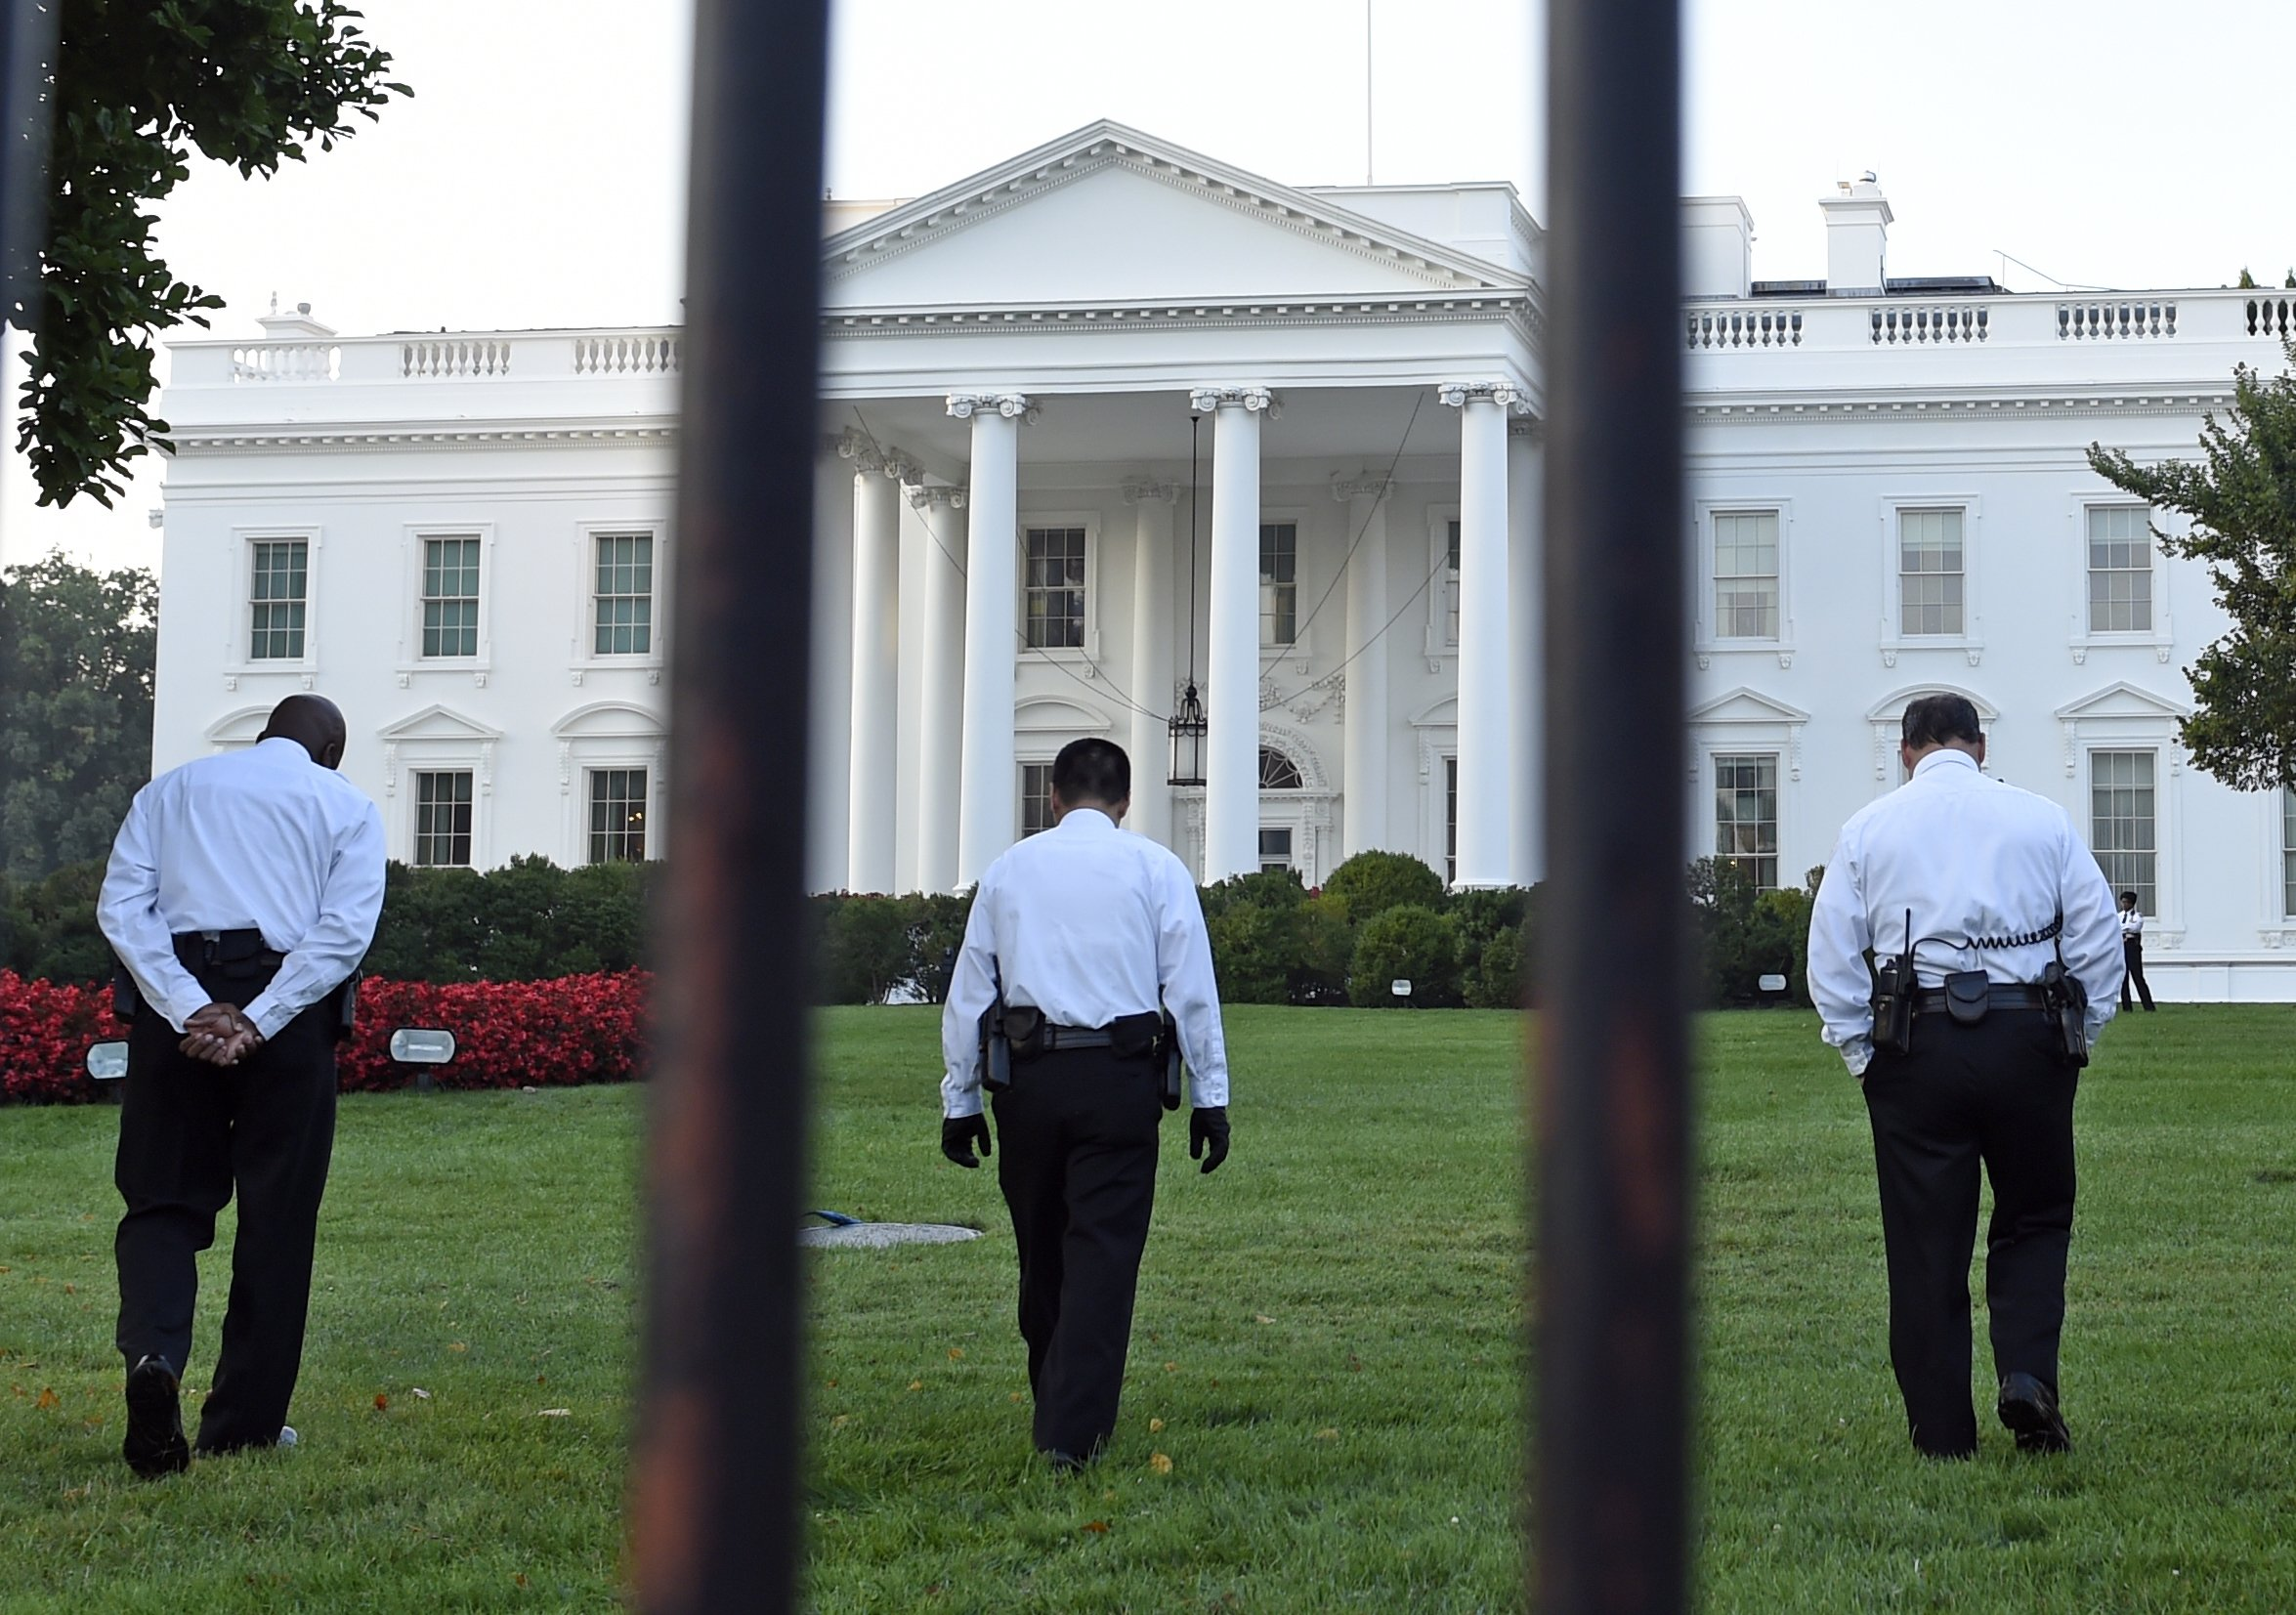 Uniformed Secret Service officers walk along the lawn on the North side of the White House in Washington on Sept. 20, 2014. The Secret Service is coming under renewed scrutiny after a man scaled the White House fence and made it all the way through the front door before he was apprehended.